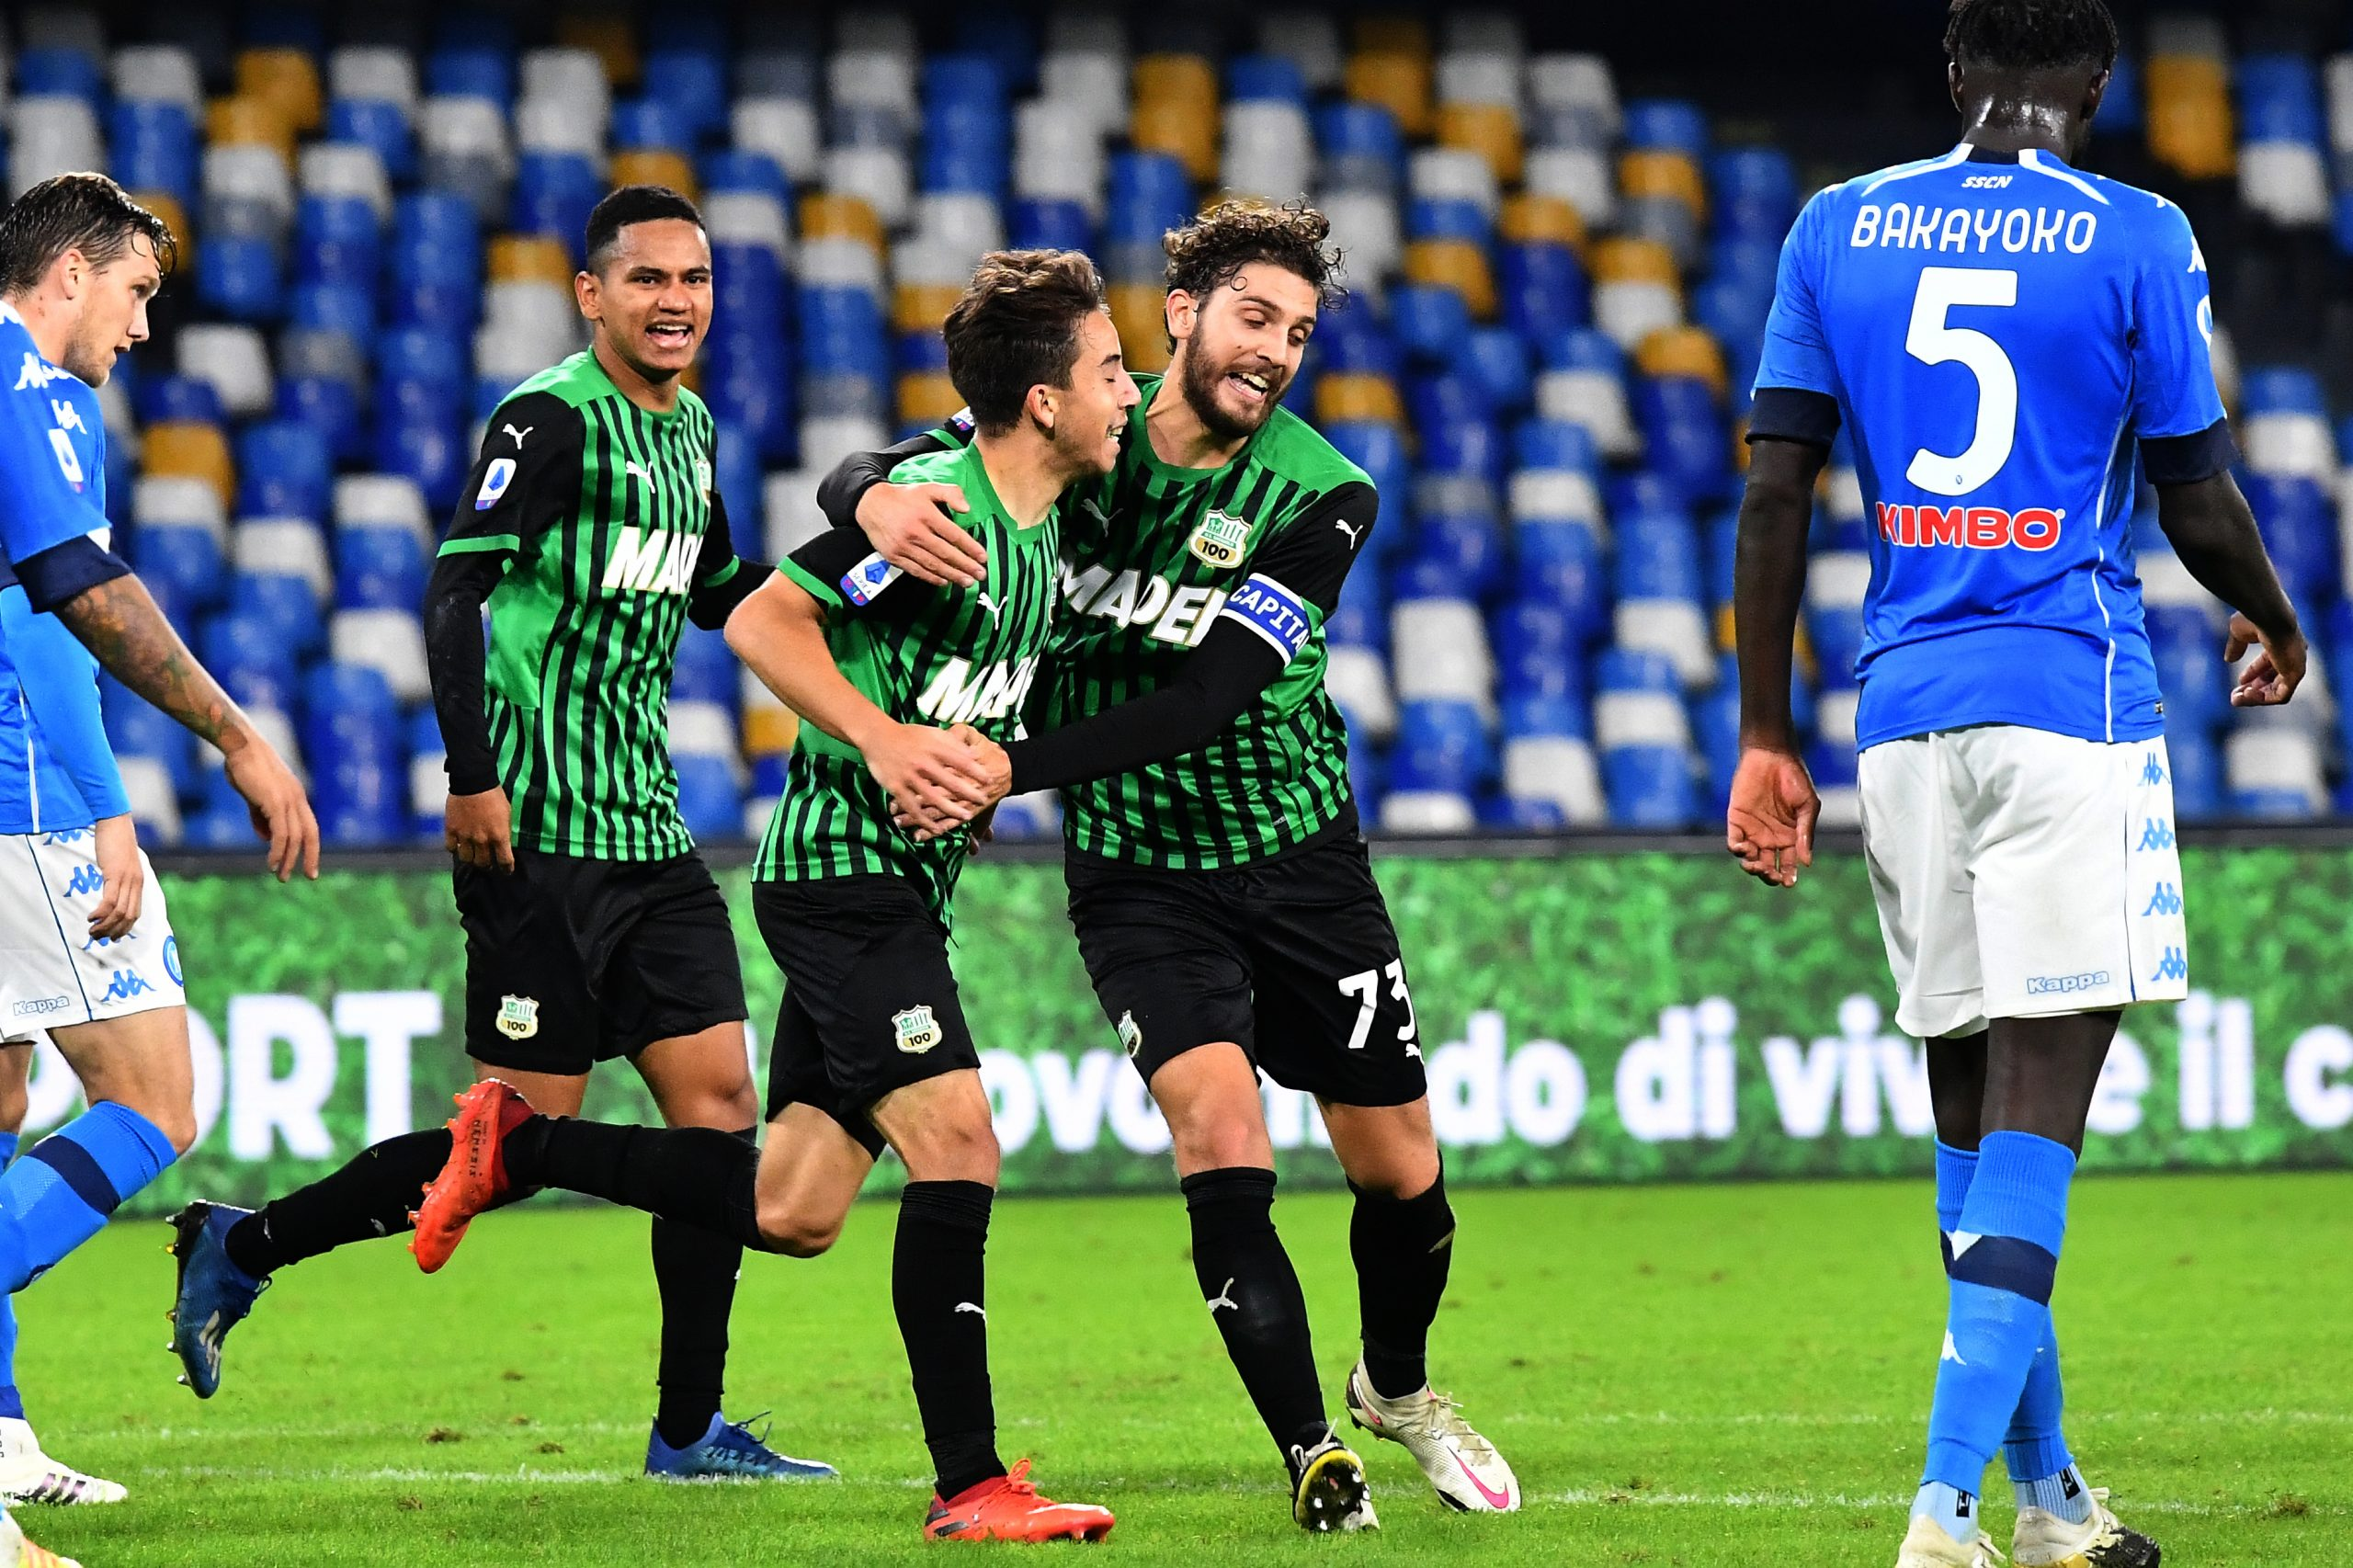 Sassuolo Target Serie A Top Spot After Flying Start